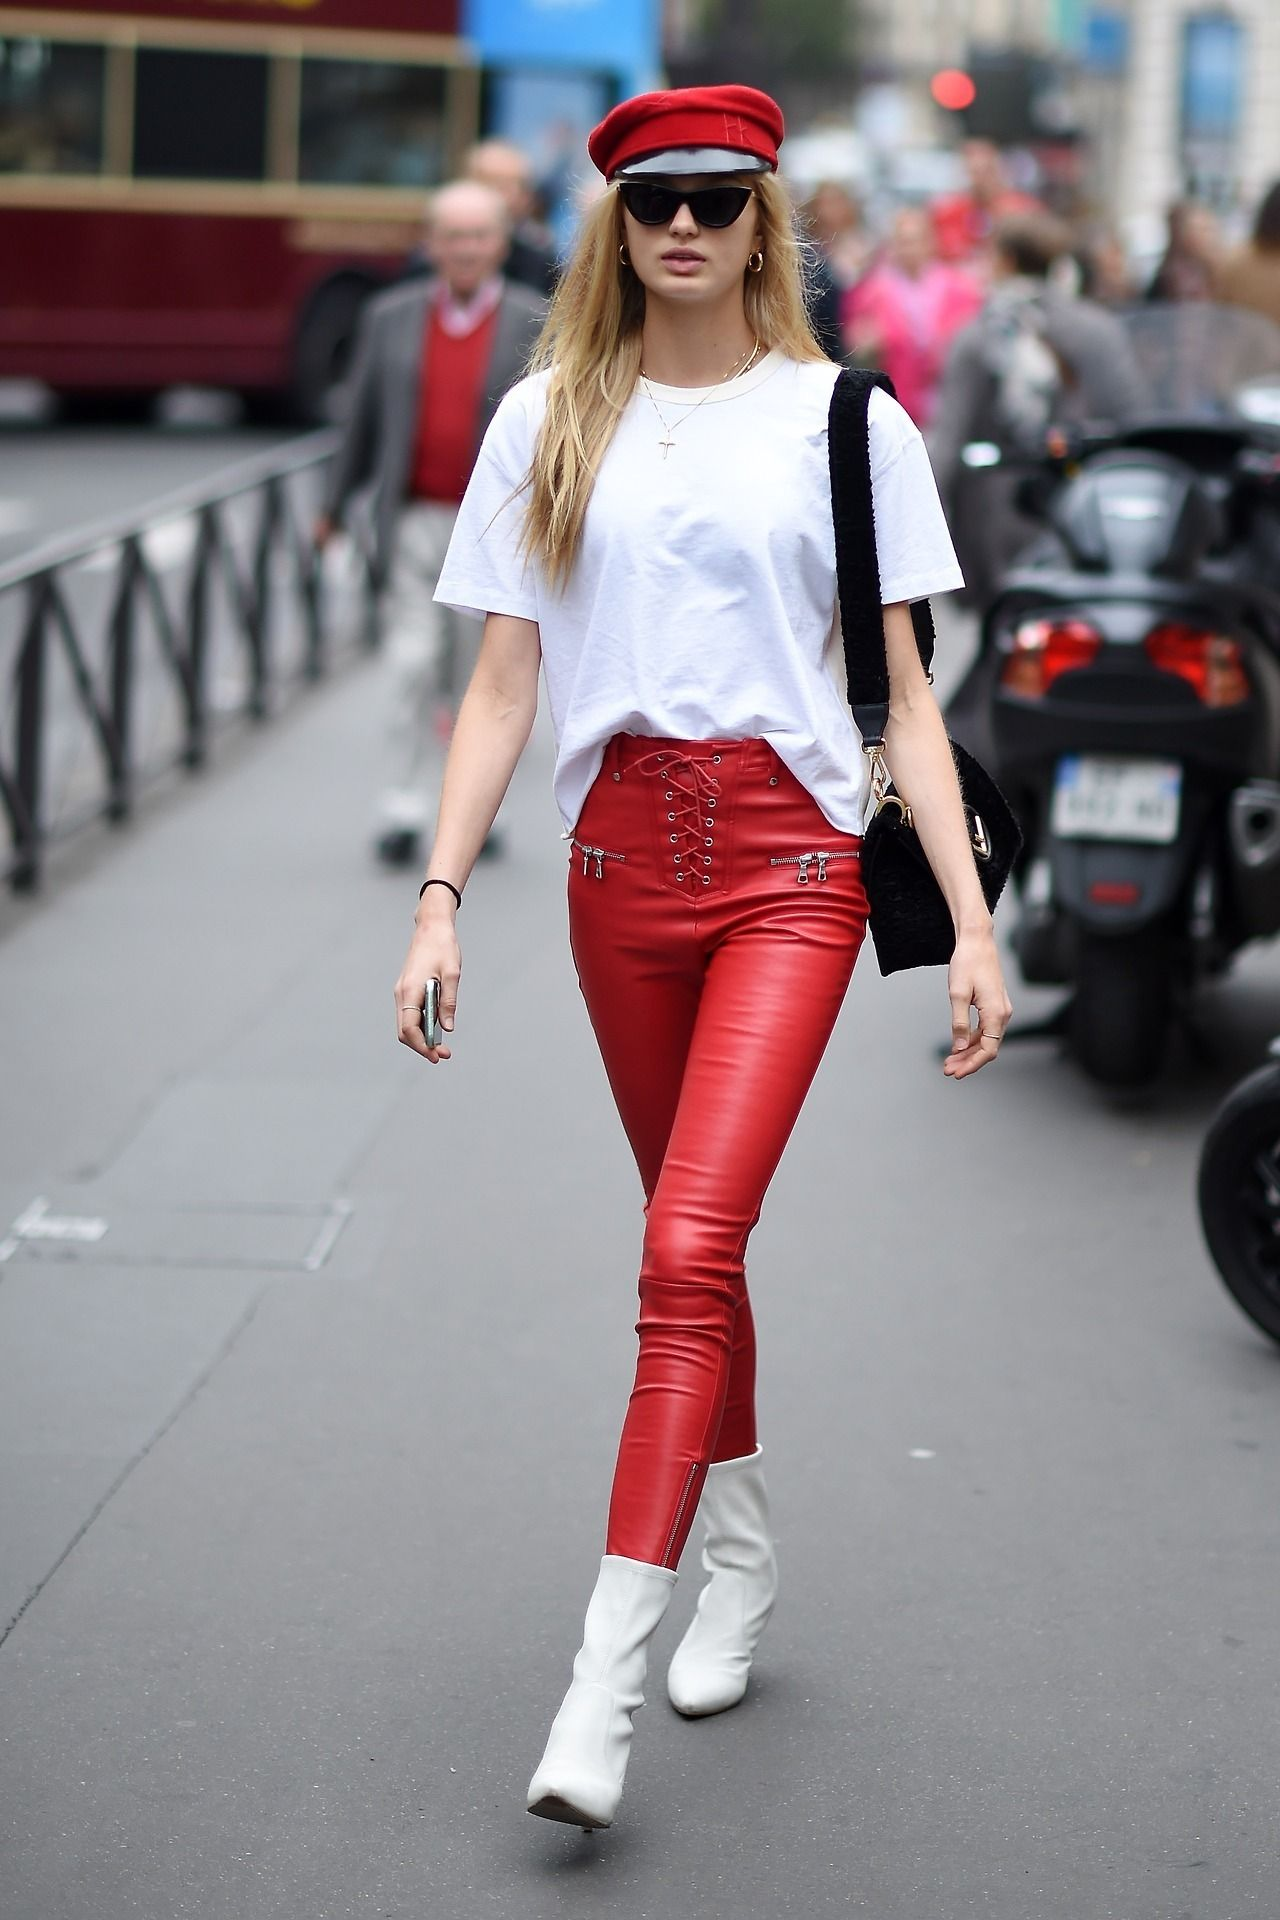 a390303cb88f Romee Strijd get the look for less Red bakers boy hat   57 from  Bloomingdales Oversized white t-shirt   30 from Asos Red high wasted  leather pants   54.95 ...